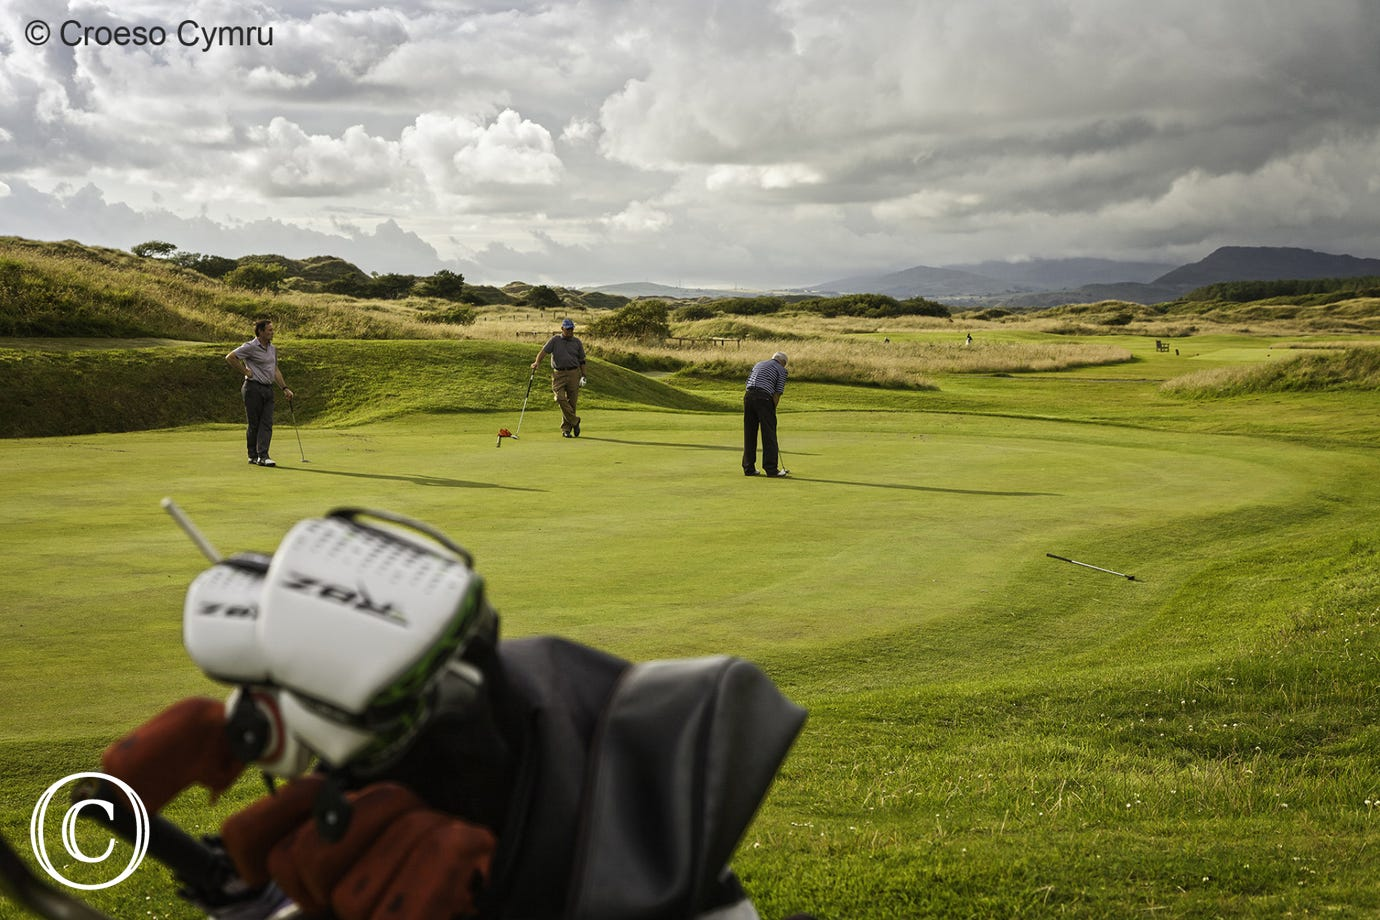 Royal St. David's Golf Course in Harlech